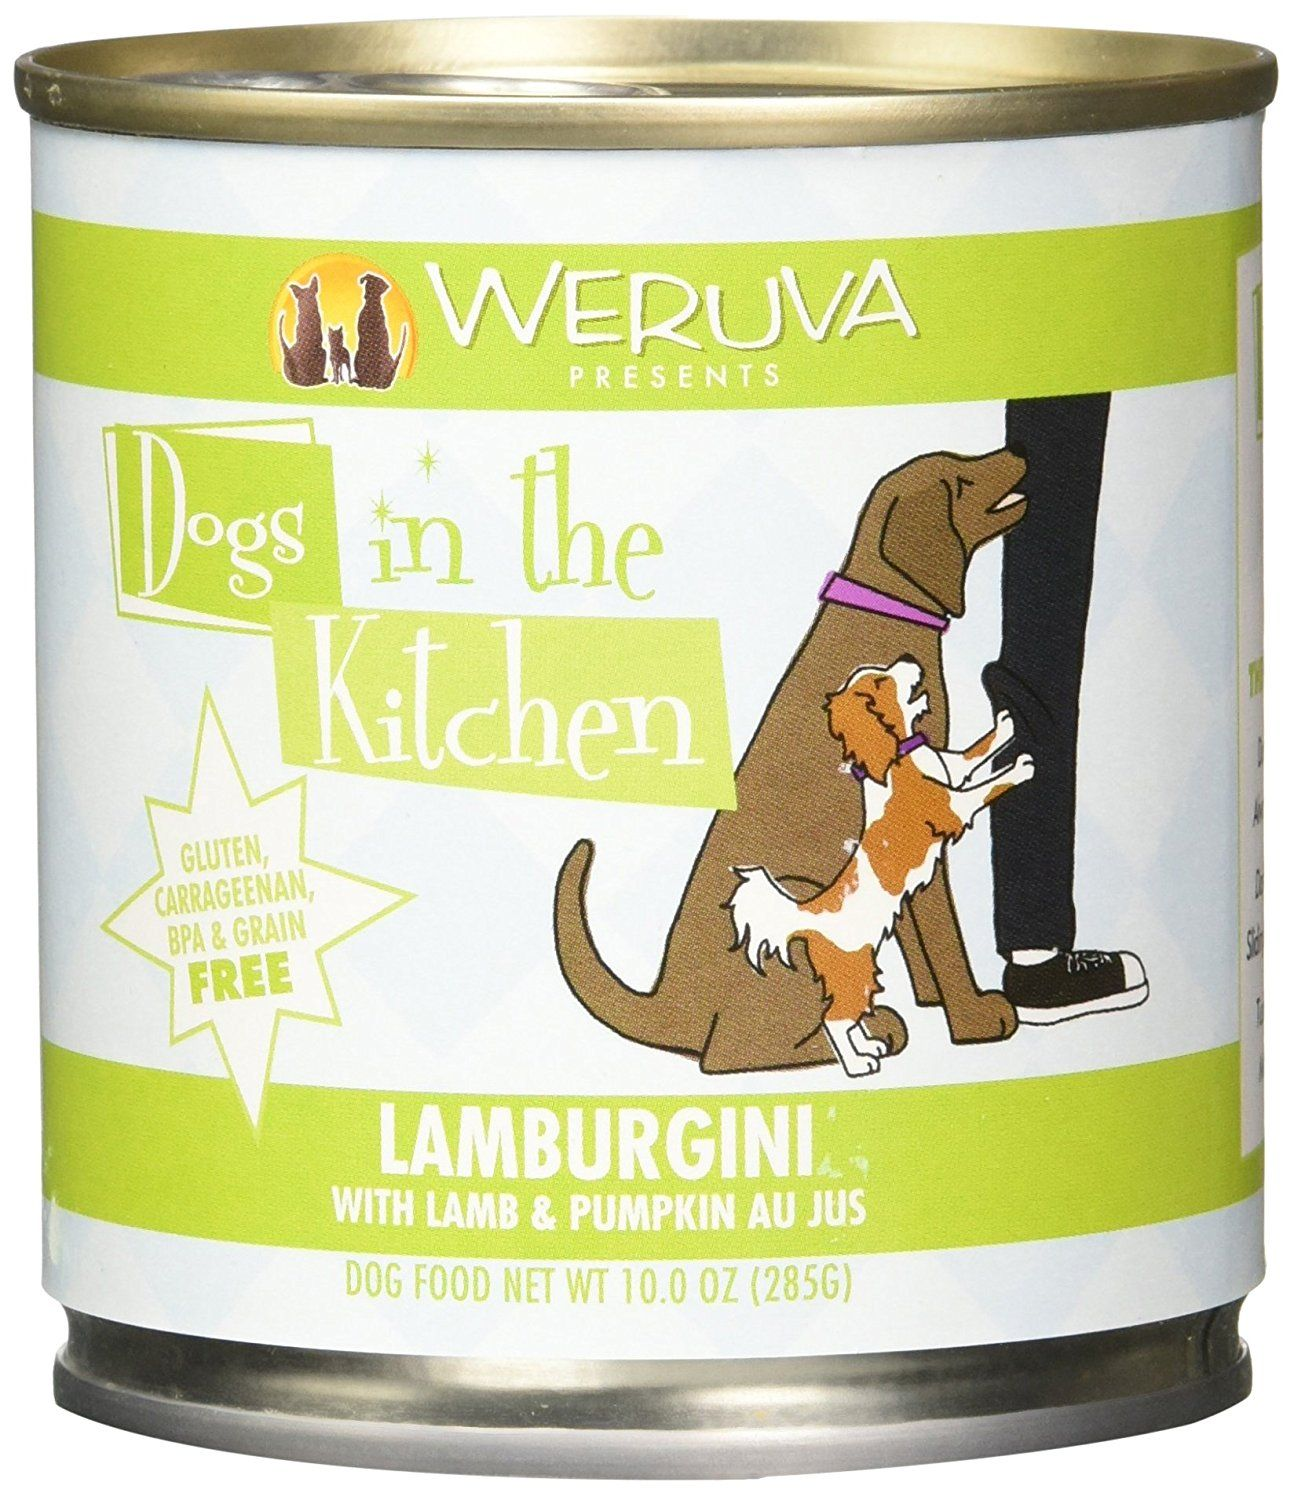 Weruva Dogs In The Kitchen Lamborghini Lamb And Pumpkin Food 12 Pack 10 Oz Review More Details Here This I Wet Dog Food Canned Dog Food Dog Food Recipes